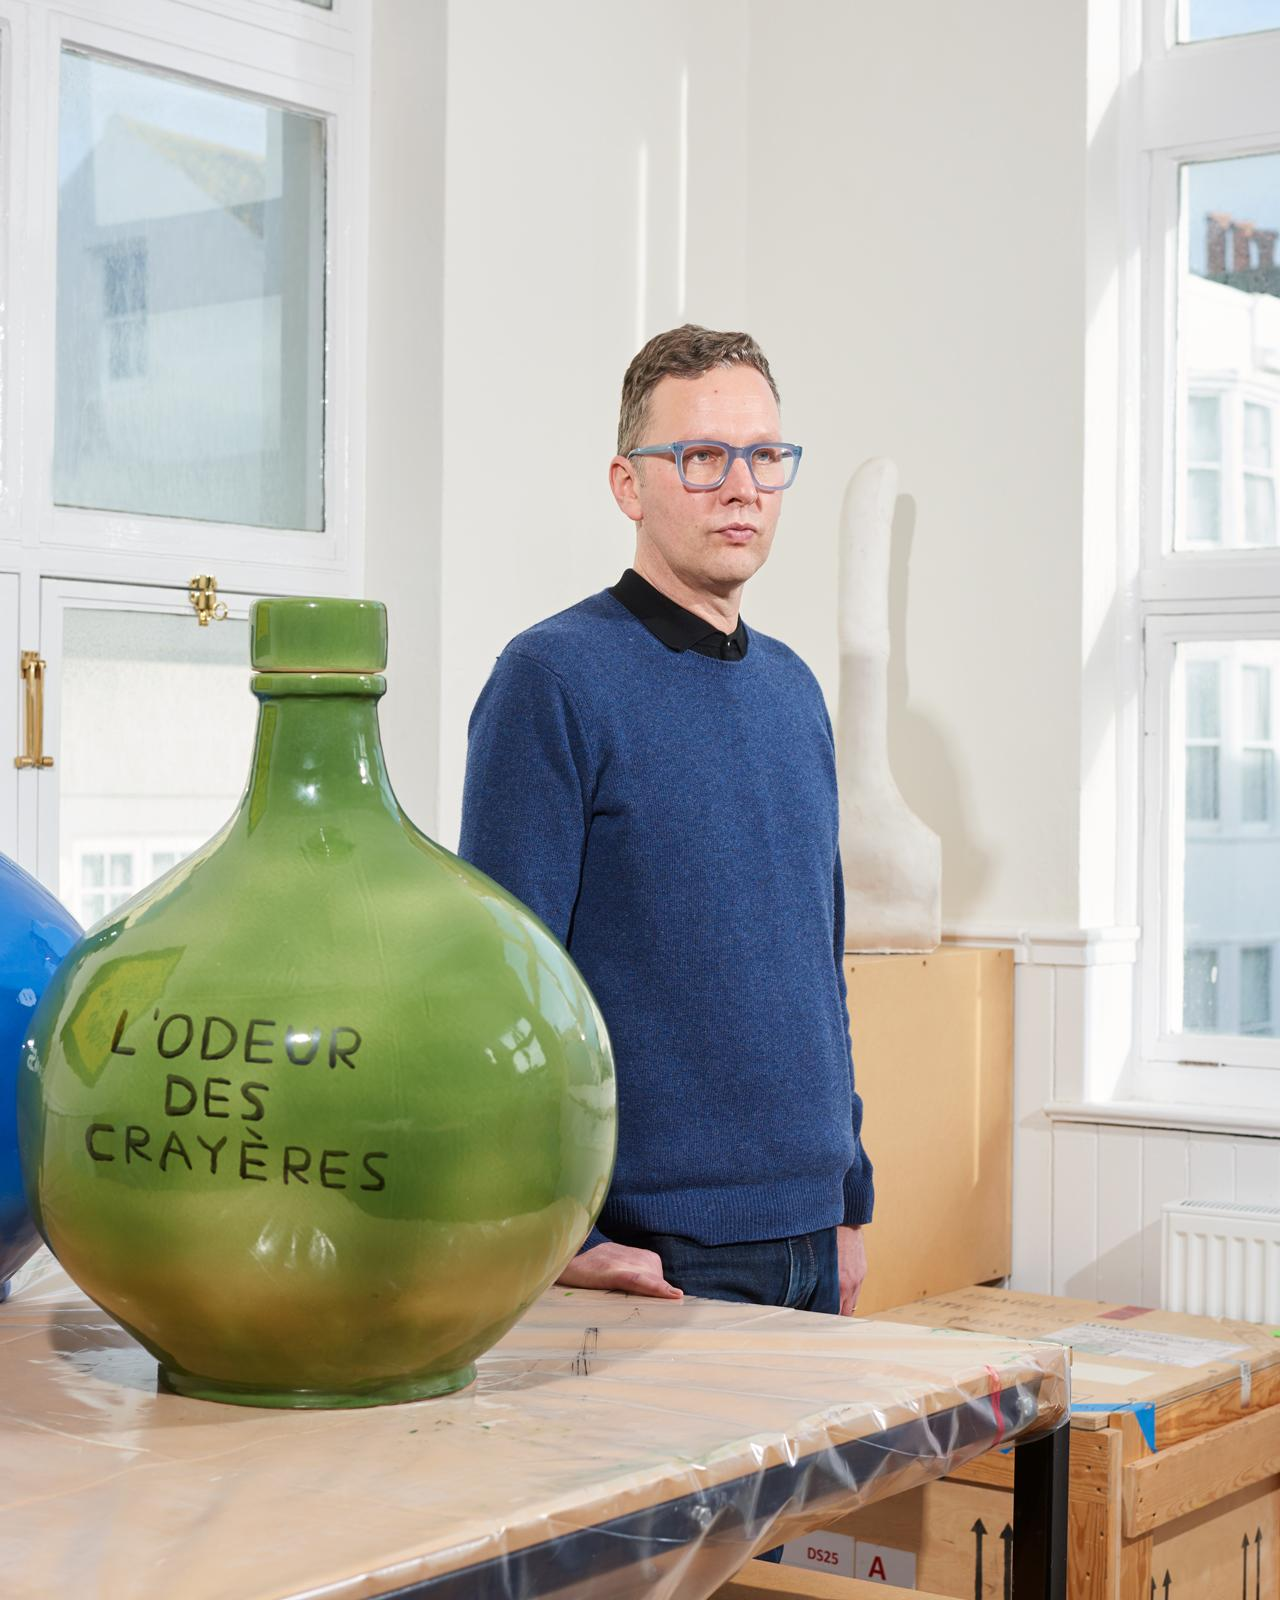 David Shrigley in his Brighton studio with ceramic vessel from his collaboration with Ruinart